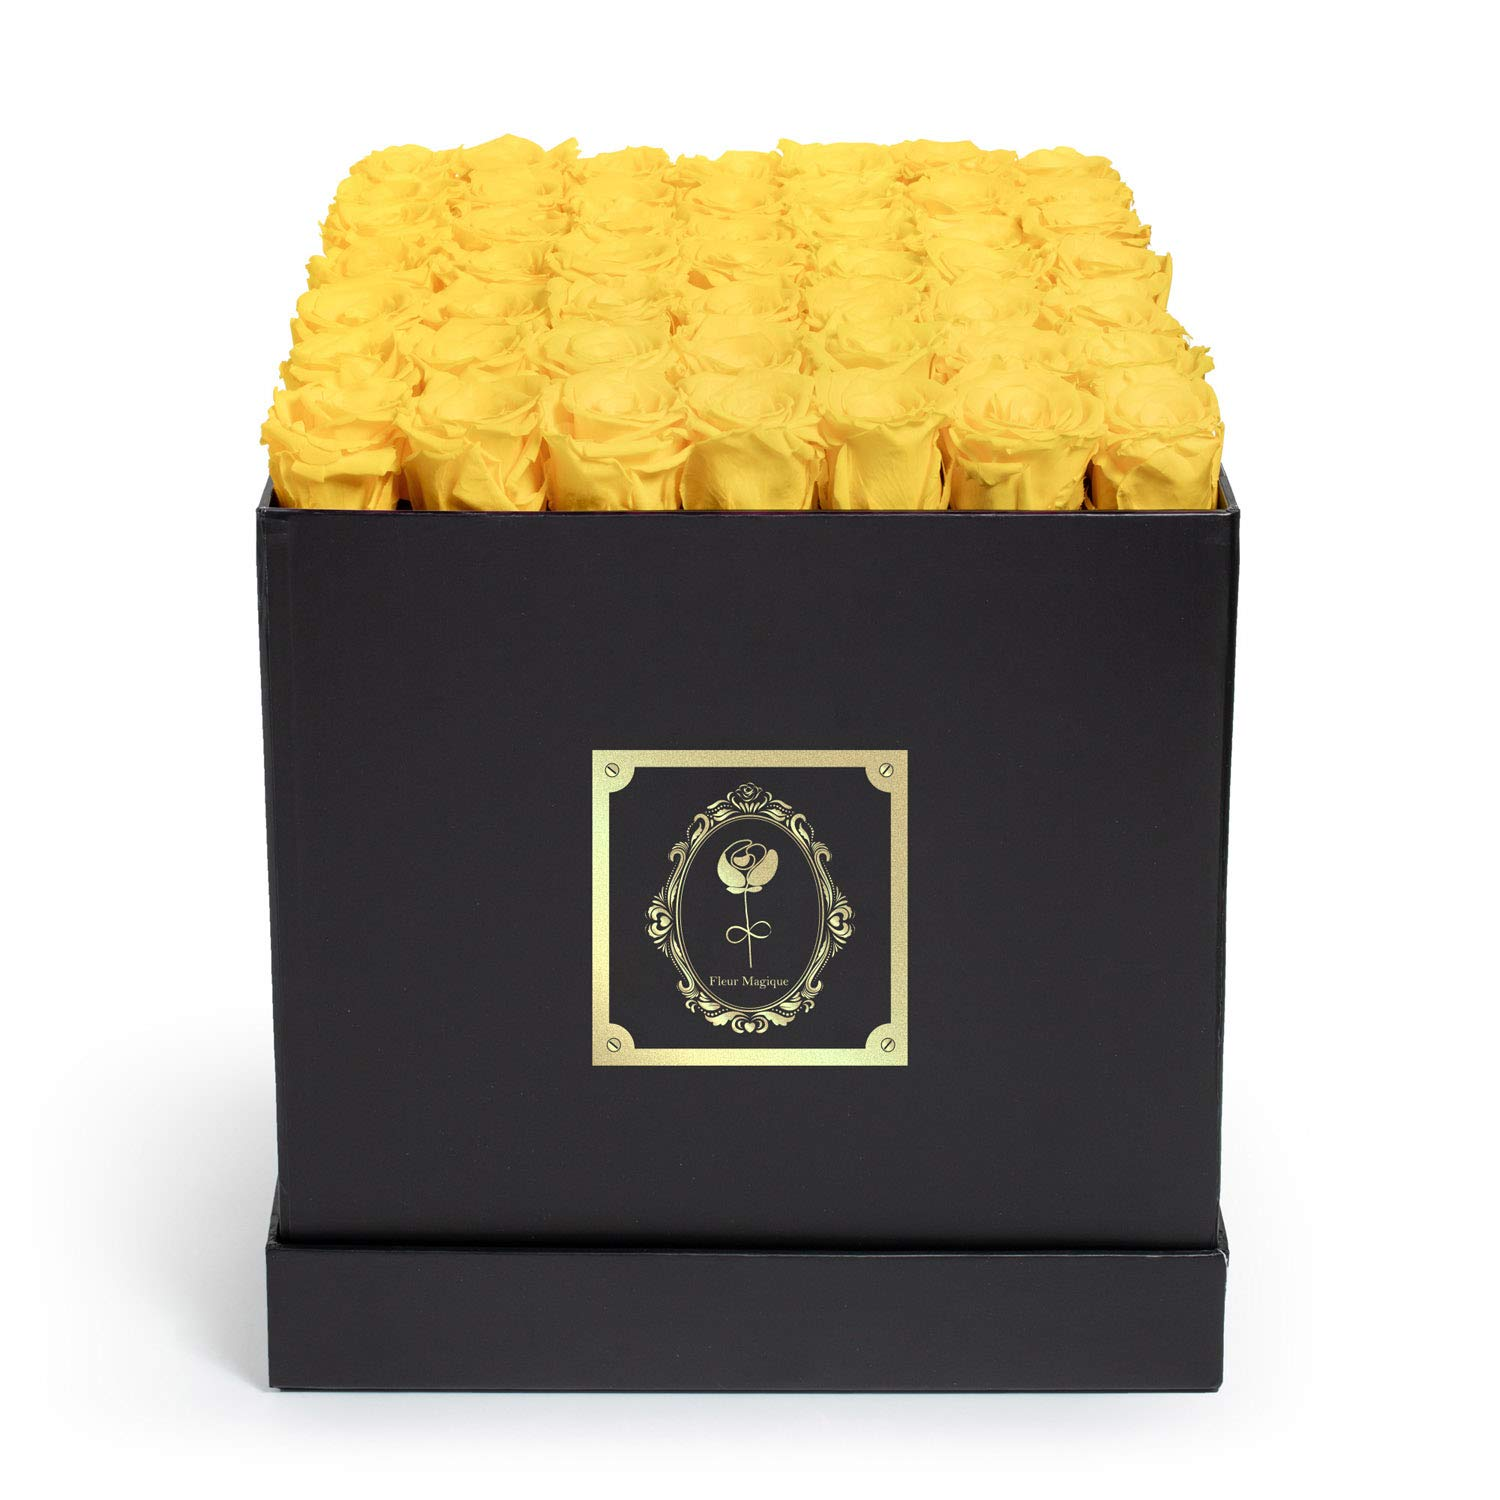 Fleur Magique | Fresh Cut Roses - Preserved Roses - Large Square Classic Black Box - Yellow Roses